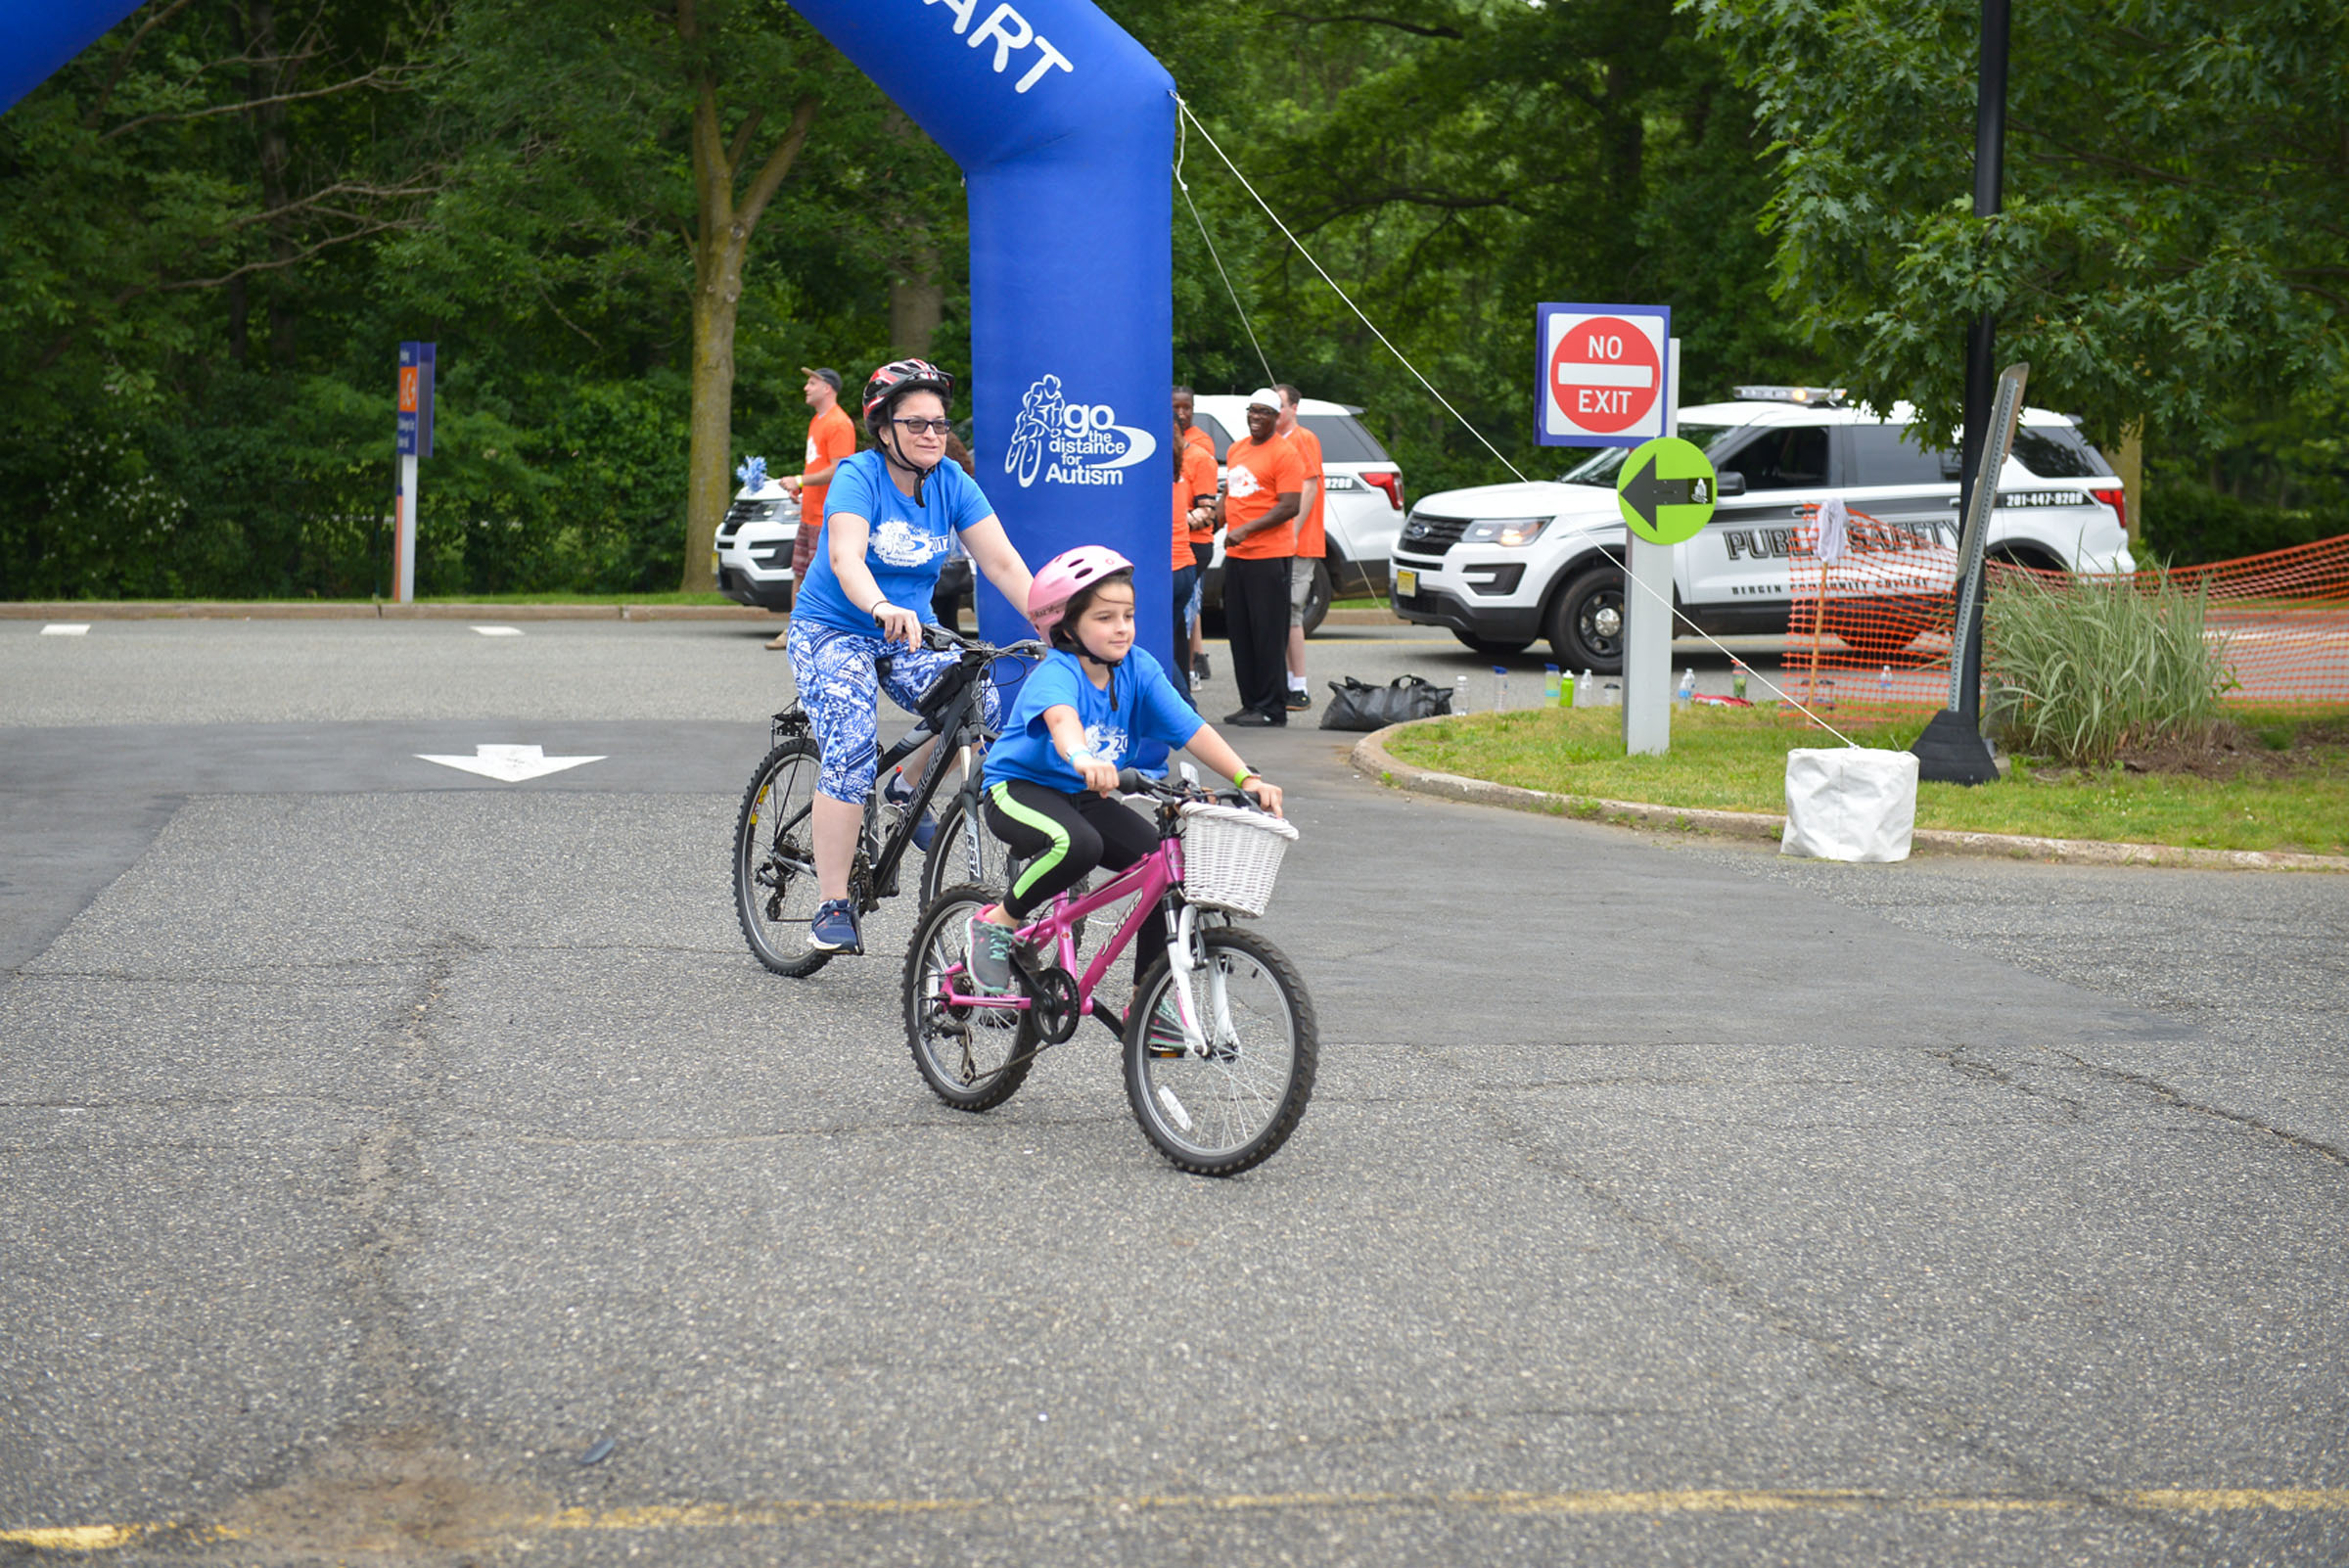 2017-06-04 GTD4A Charity Bike Ride - BCC - Paramus NJ-2258.jpg